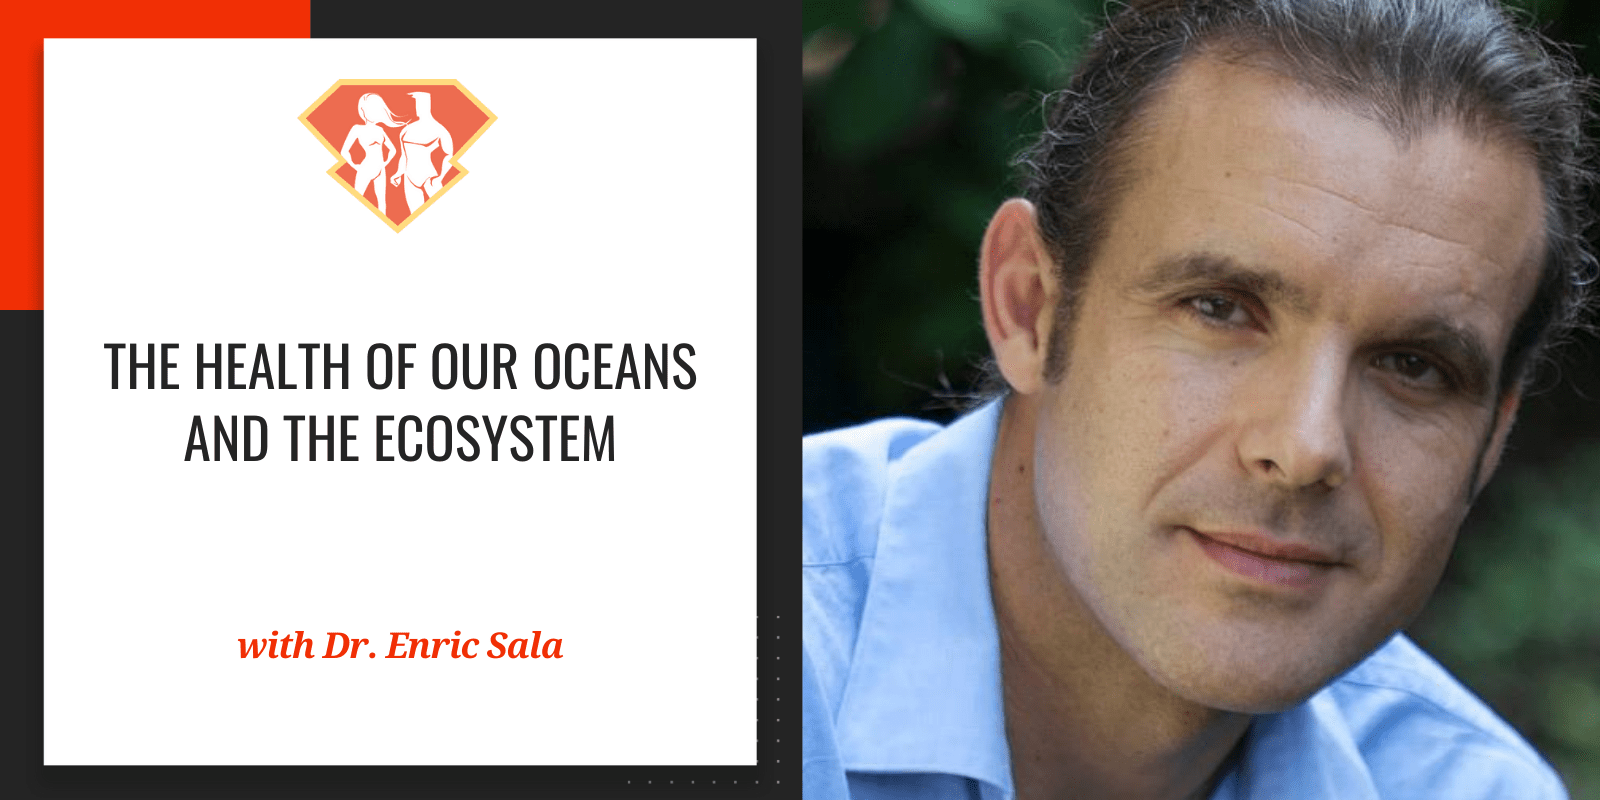 Dr. Enric Sala On The Health Of Our Oceans And The Ecosystem